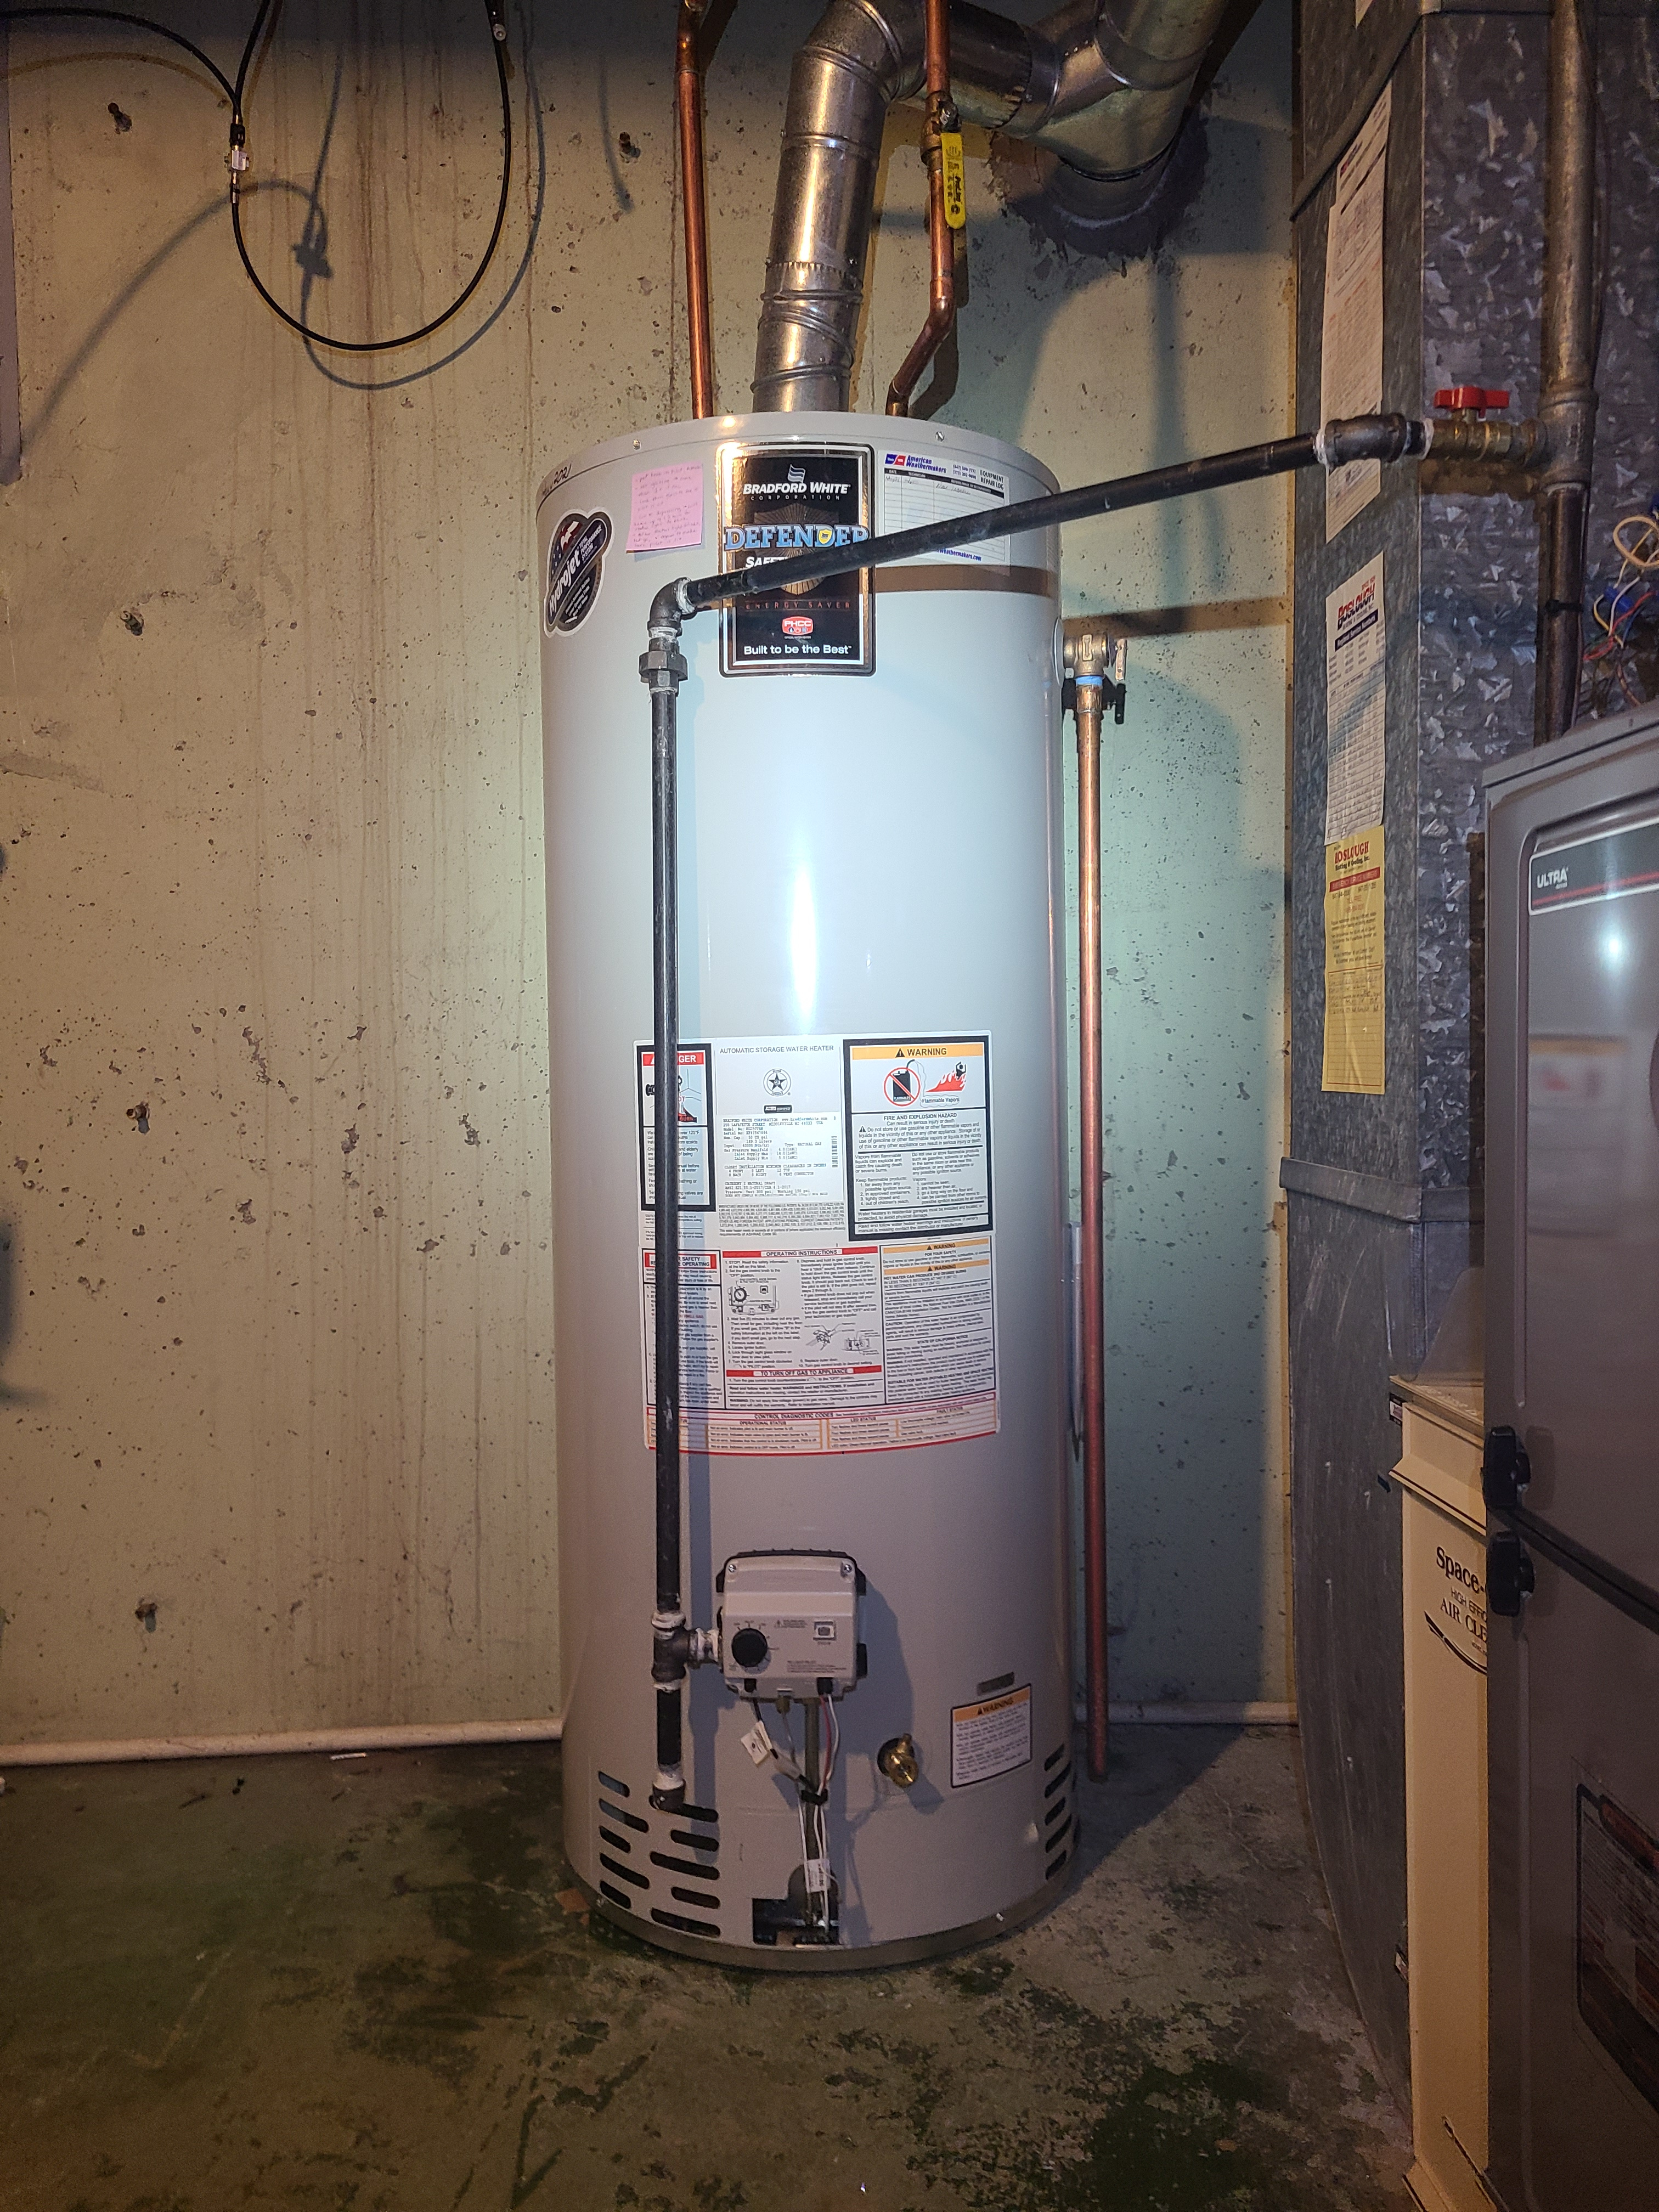 Bradford White 50gallon water heater installed to replace water heater with failed gas valve